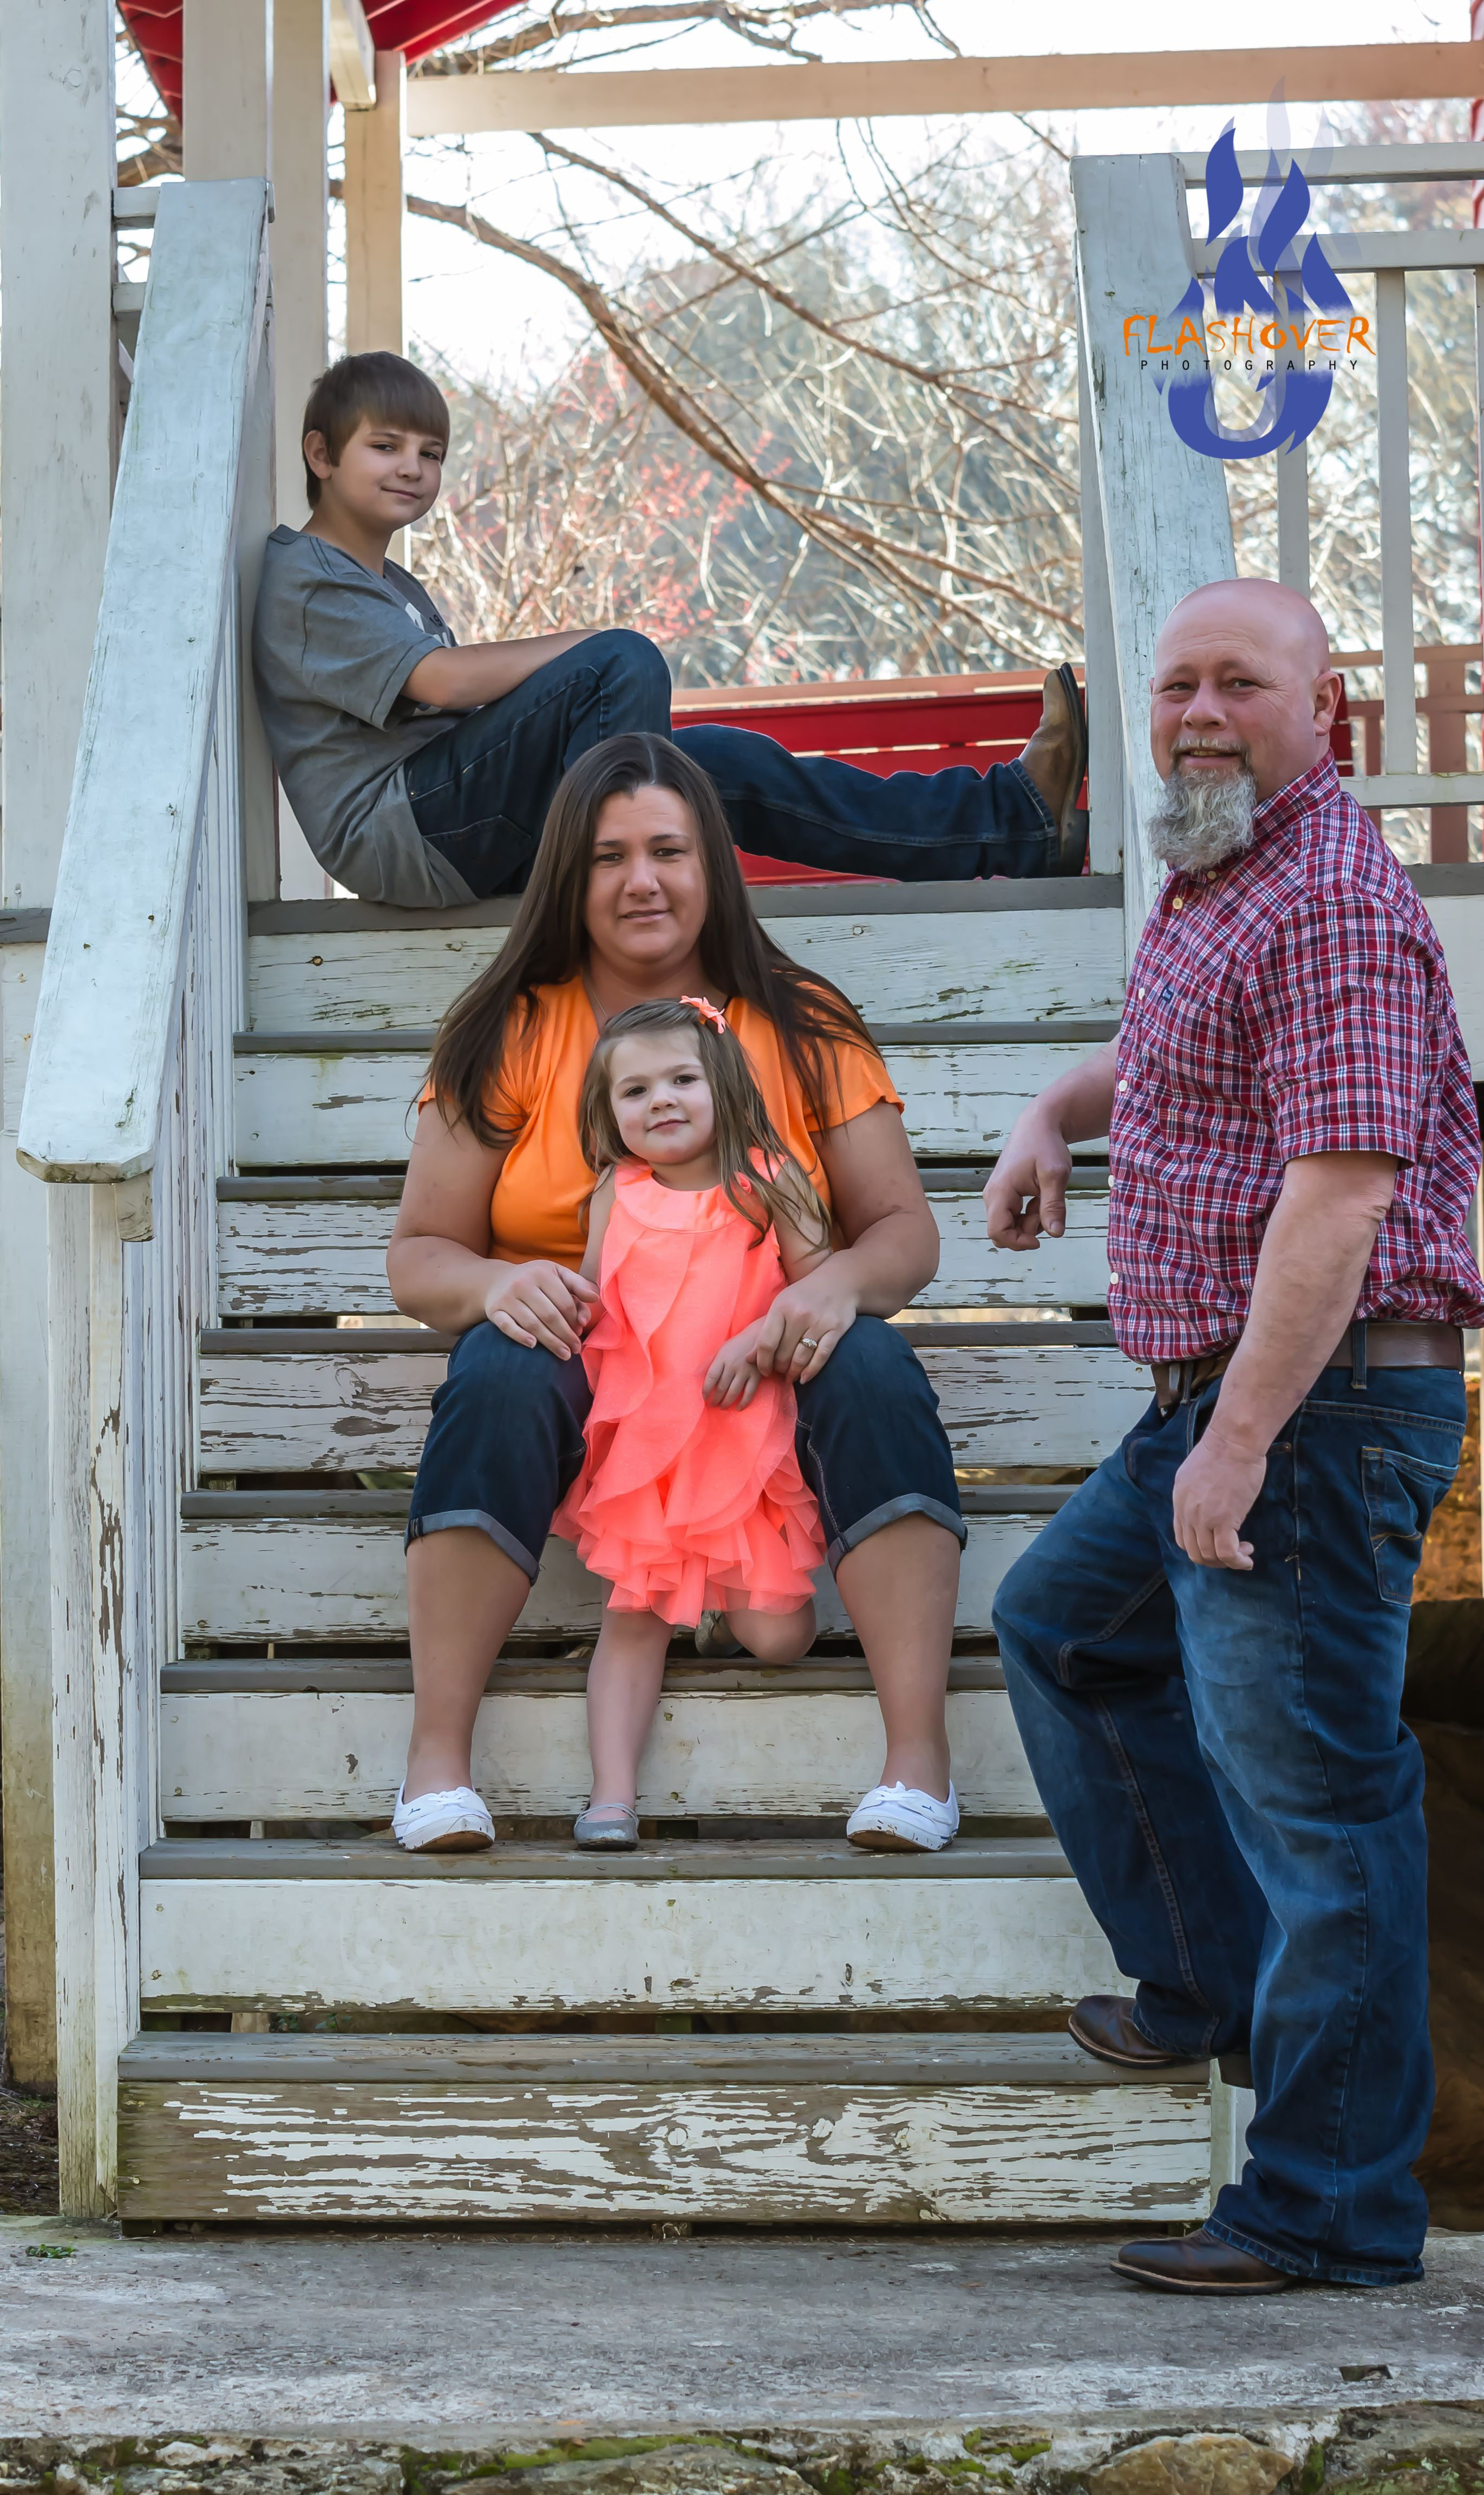 Littlefield family taken out at Starr's Mill